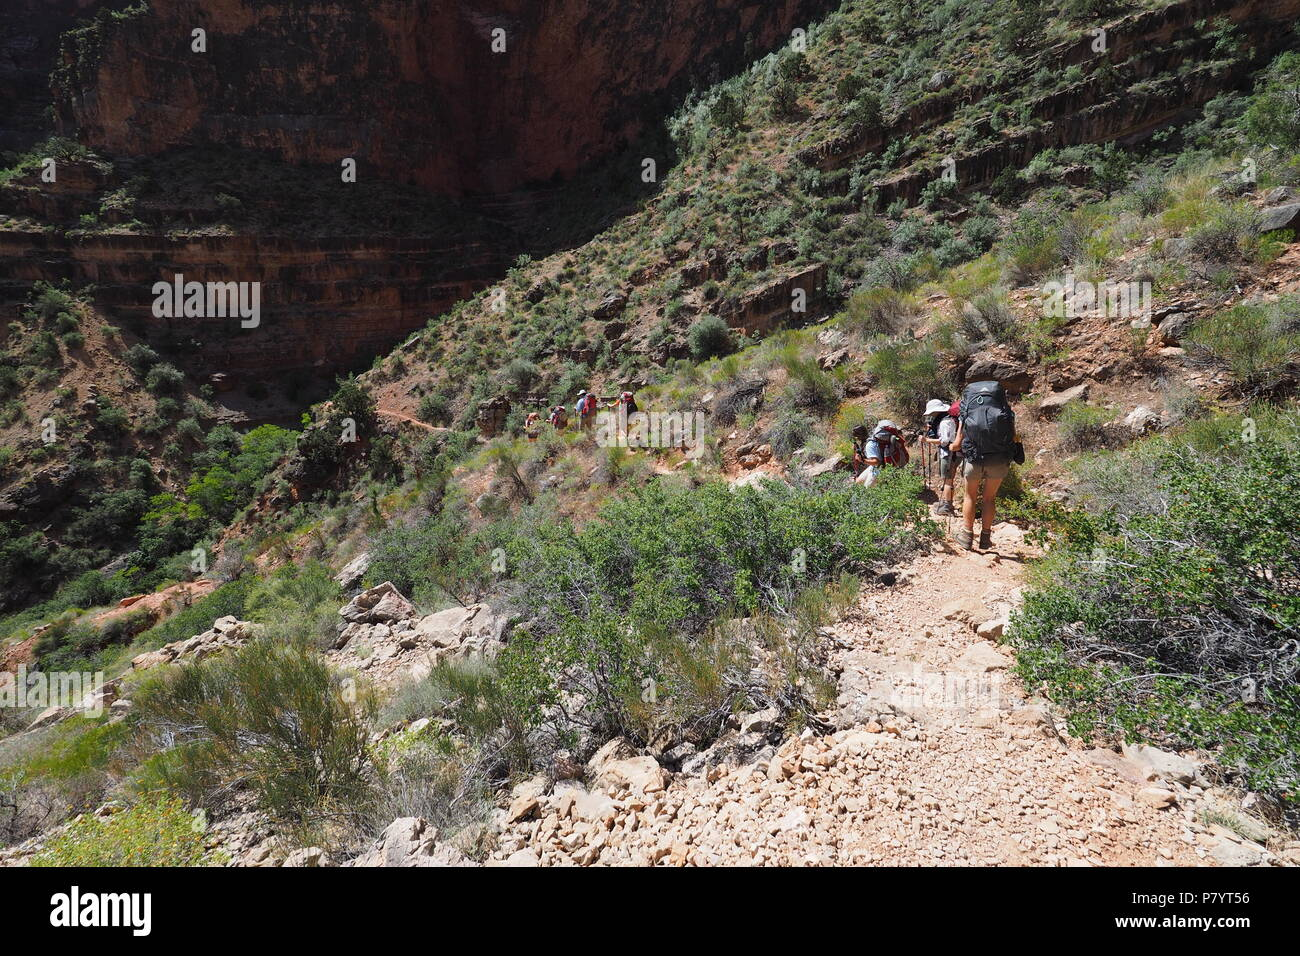 Backpackers descending the Grandview Trail between Horseshoe Mesa and Page Spring in Grand Canyon National Park, Arizona. - Stock Image